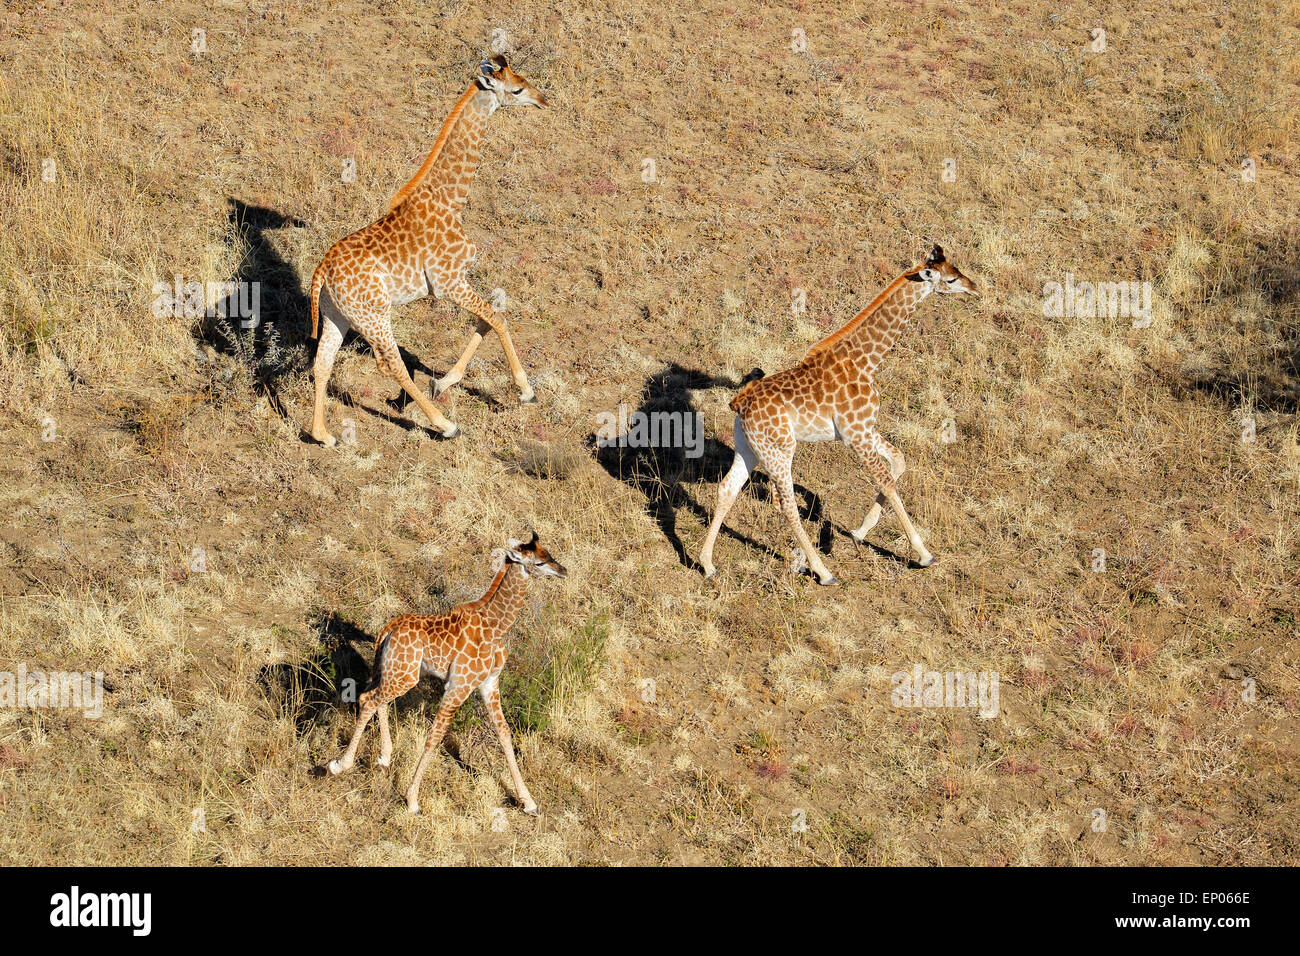 Aerial view of running giraffes (Giraffa camelopardalis), South Africa - Stock Image